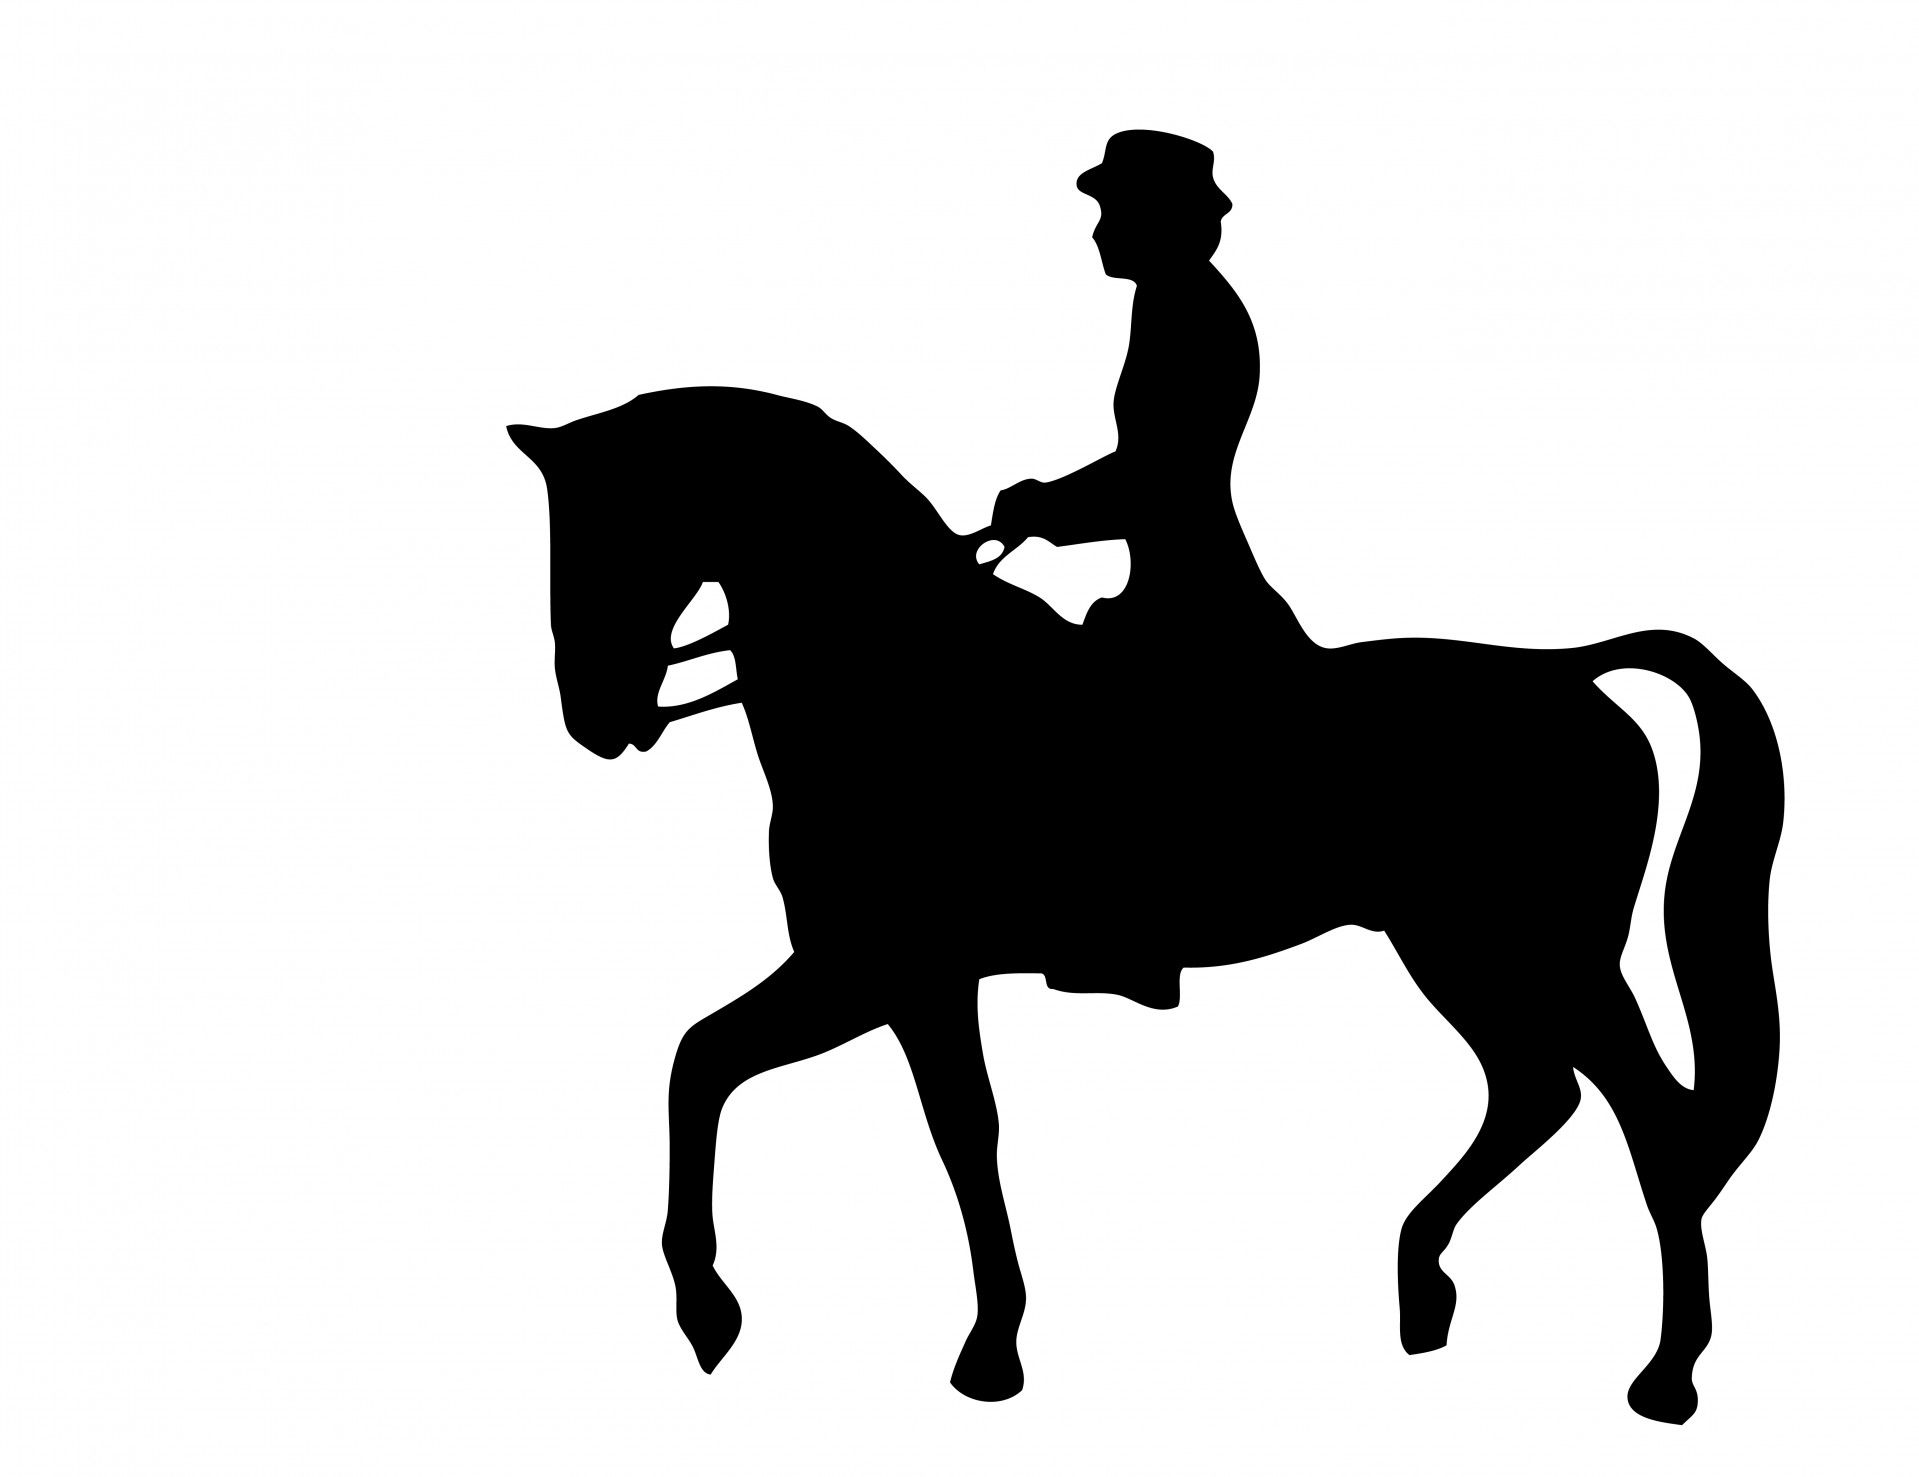 horse riding Silhouette | Horse Rider Silhouette Clipart Free Stock Photo  HD - Public Domain .